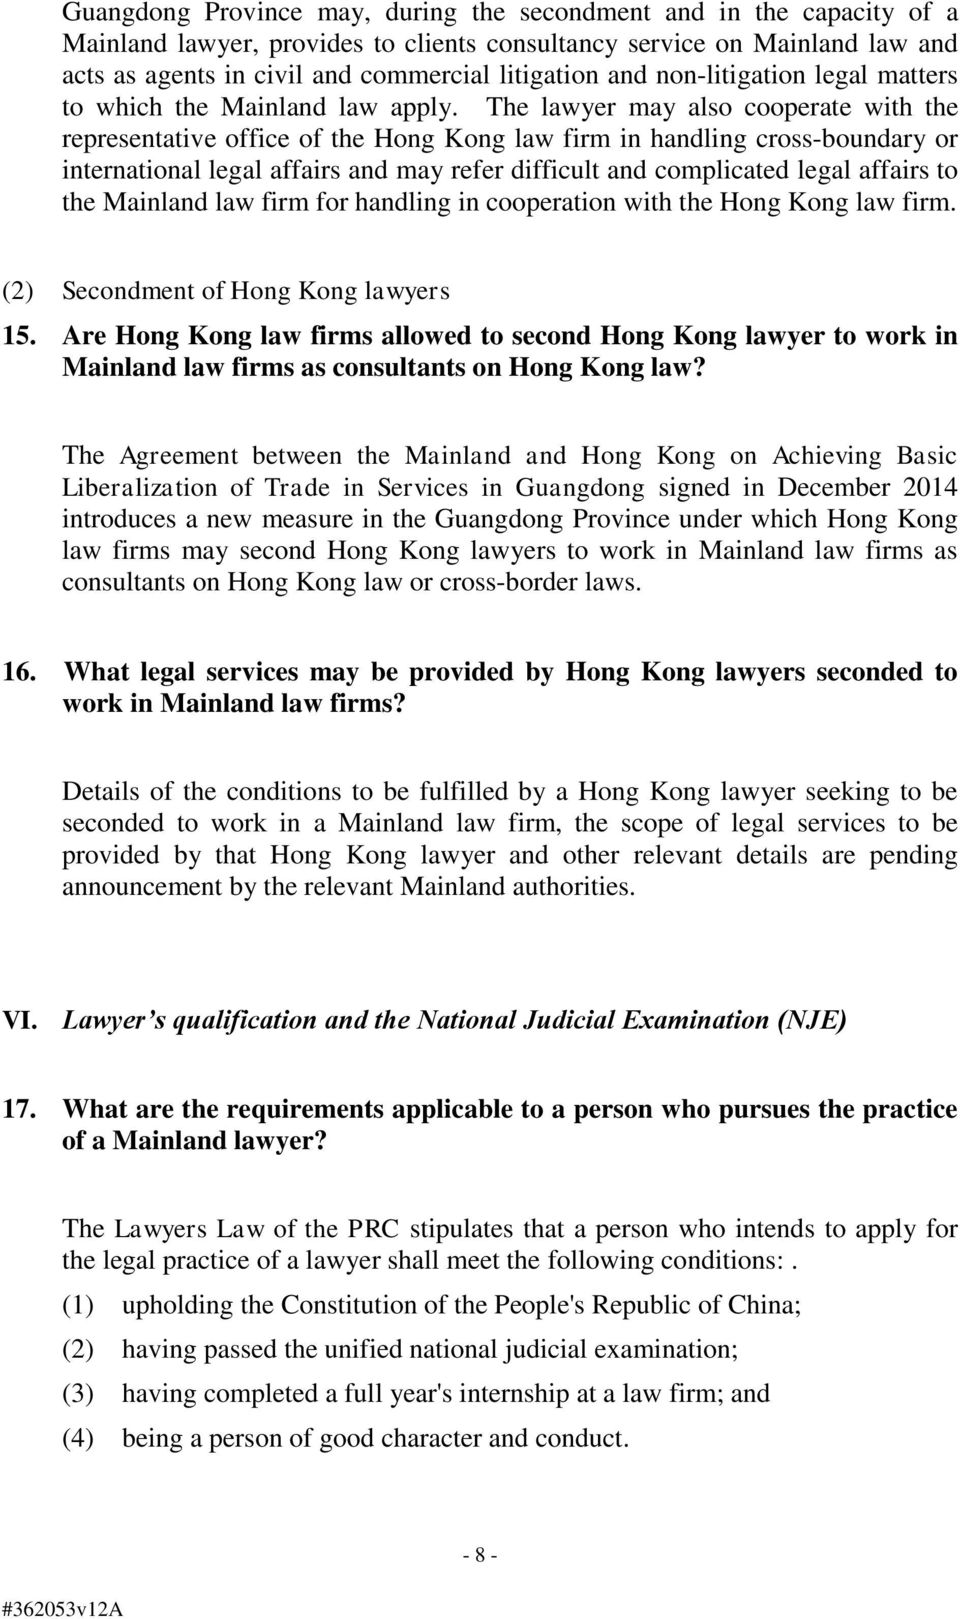 The lawyer may also cooperate with the representative office of the Hong Kong law firm in handling cross-boundary or international legal affairs and may refer difficult and complicated legal affairs